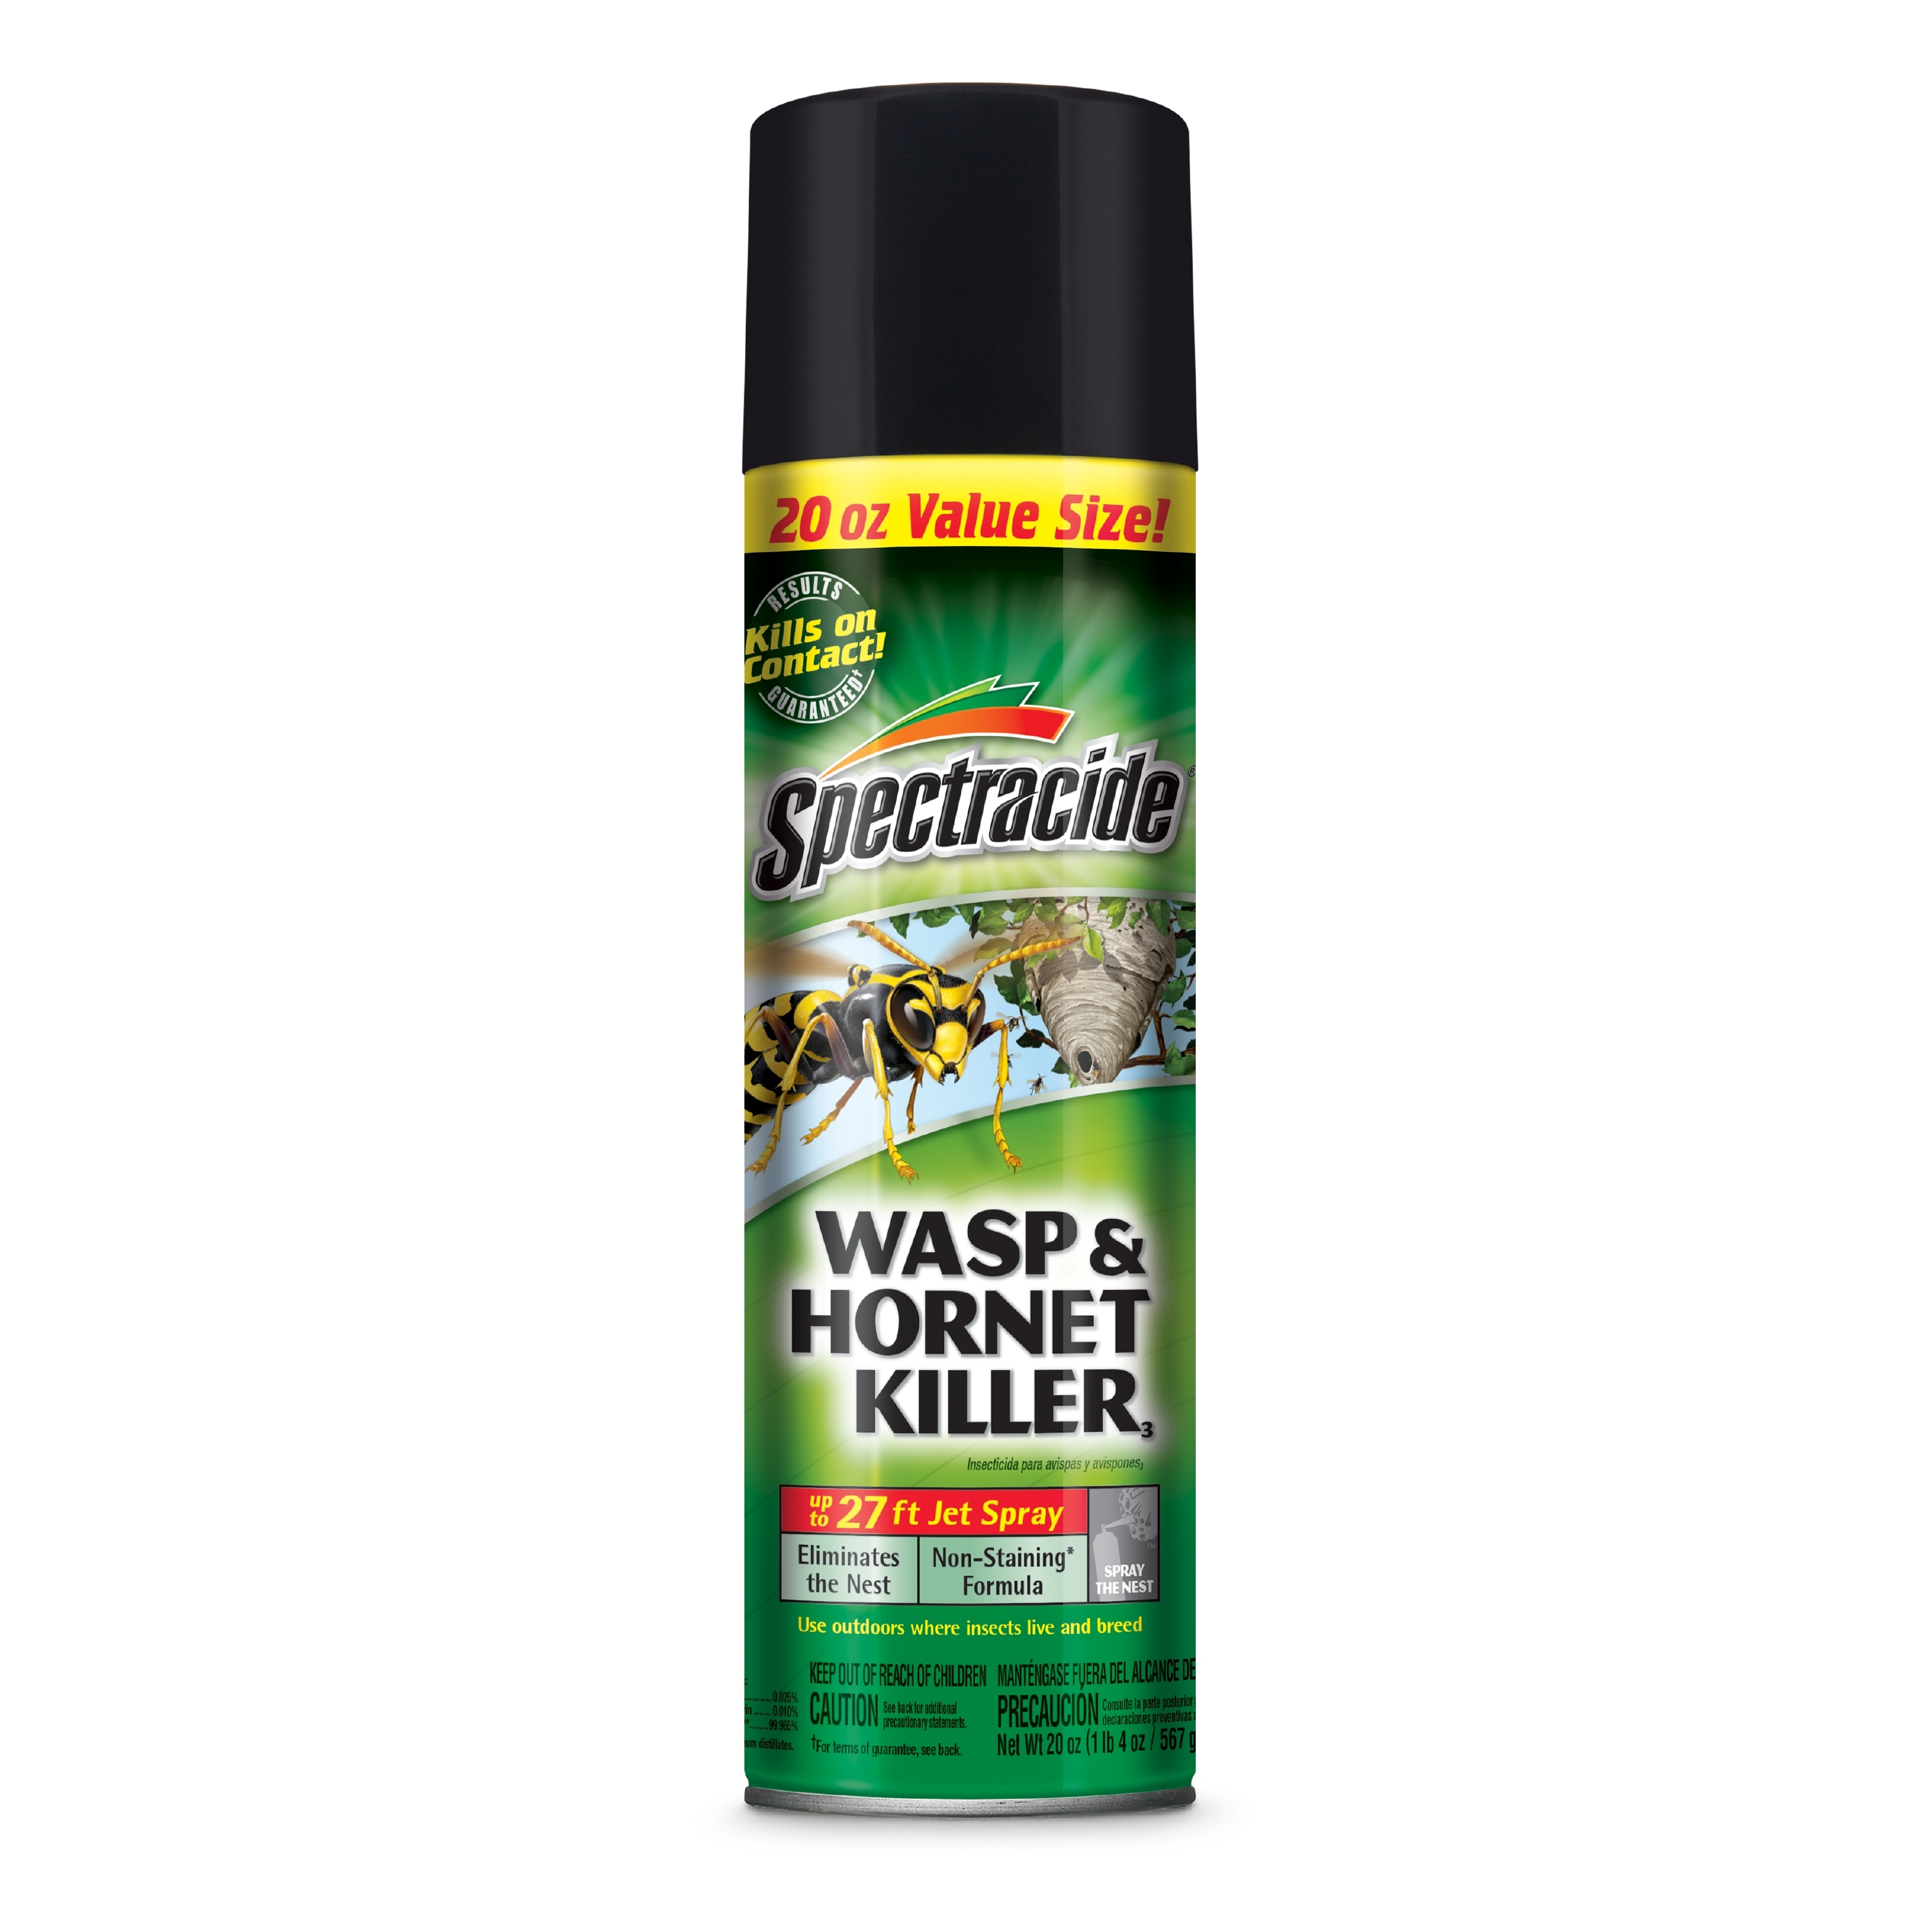 Spectracide Wasp & Hornet Killer, Aerosol, 20 ounces